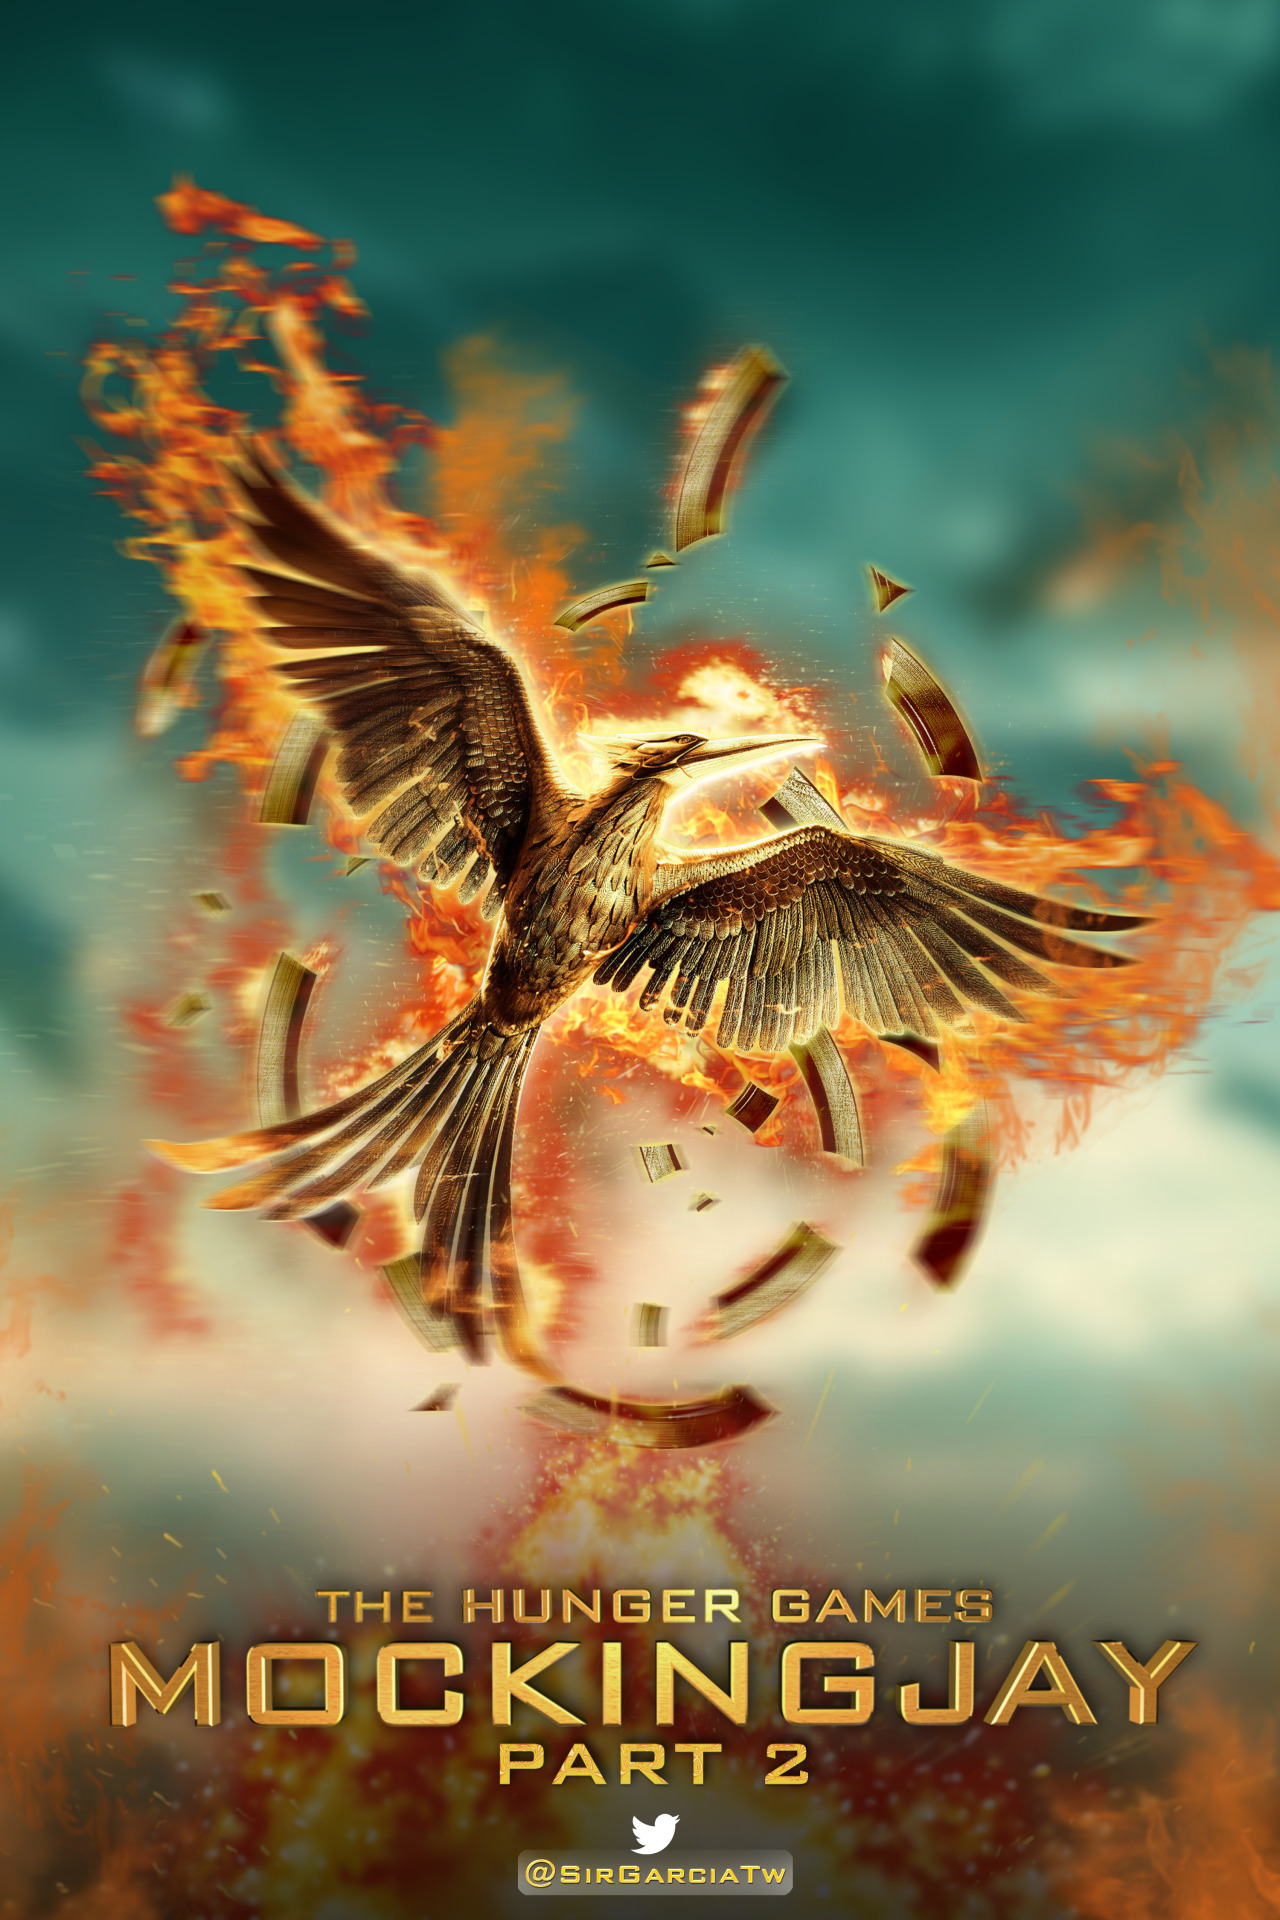 The Hunger Games Mocking Jay Part 2 Poster Launched